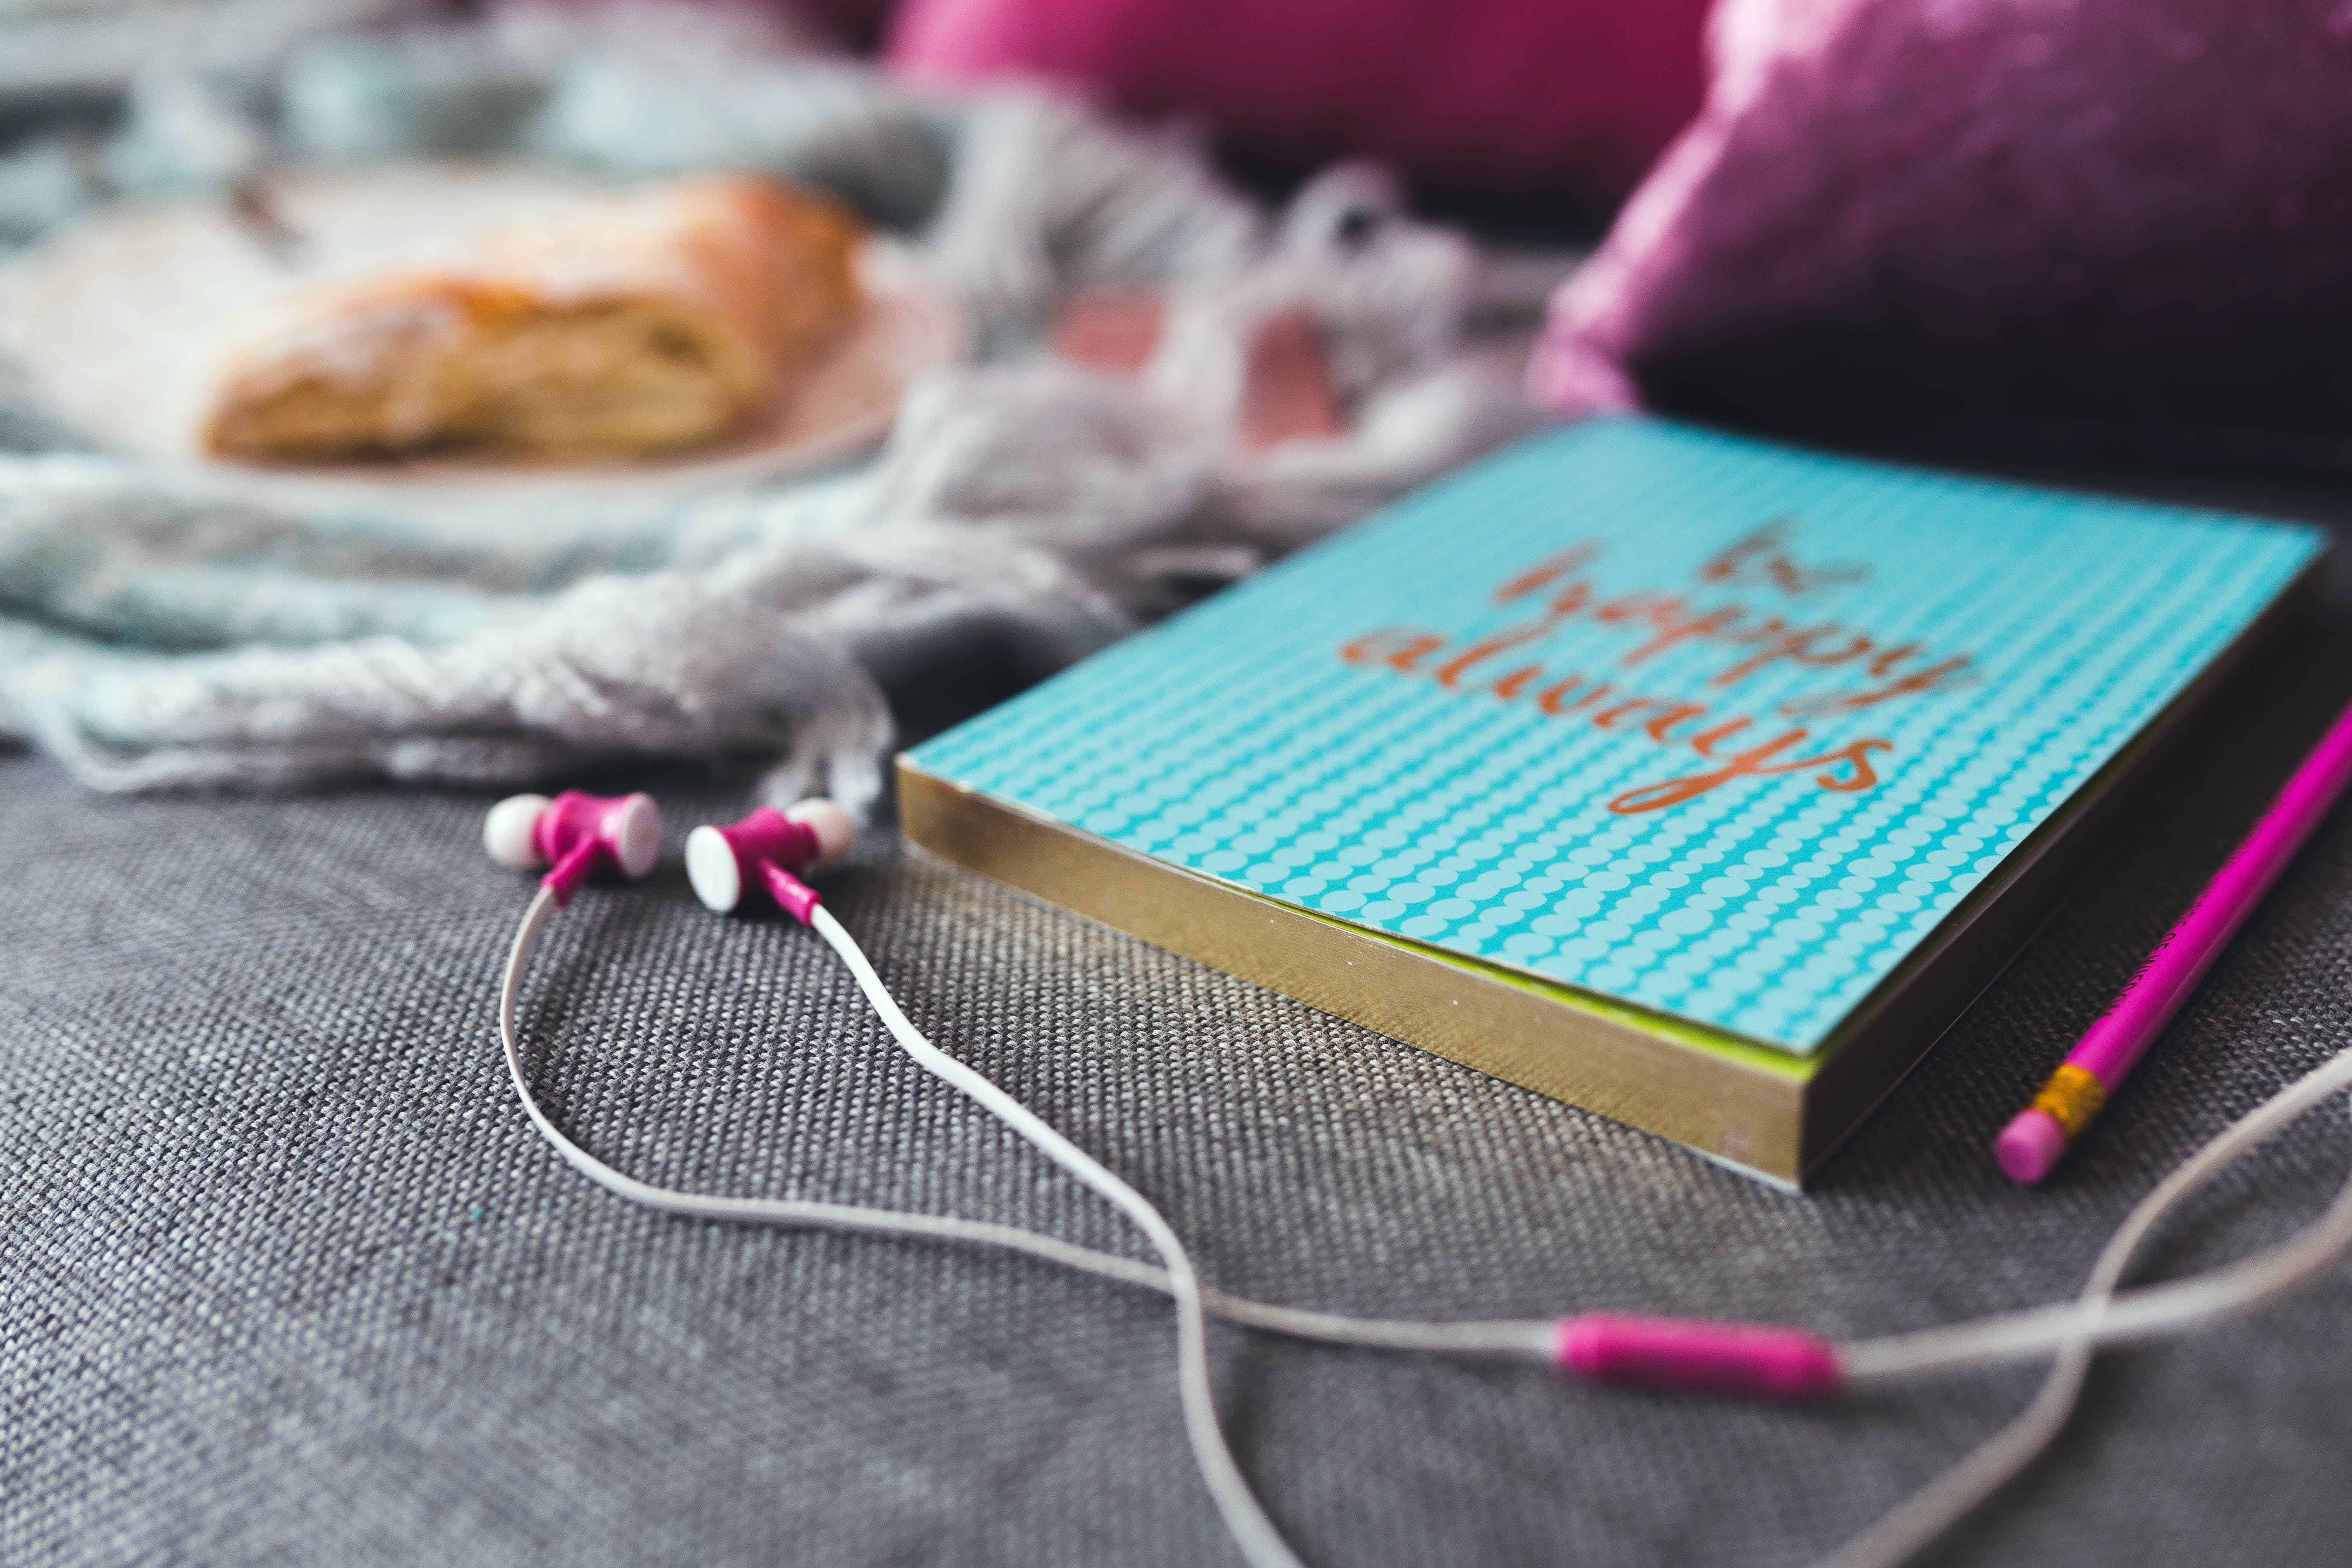 White and Pink Earphones on Gray Textile